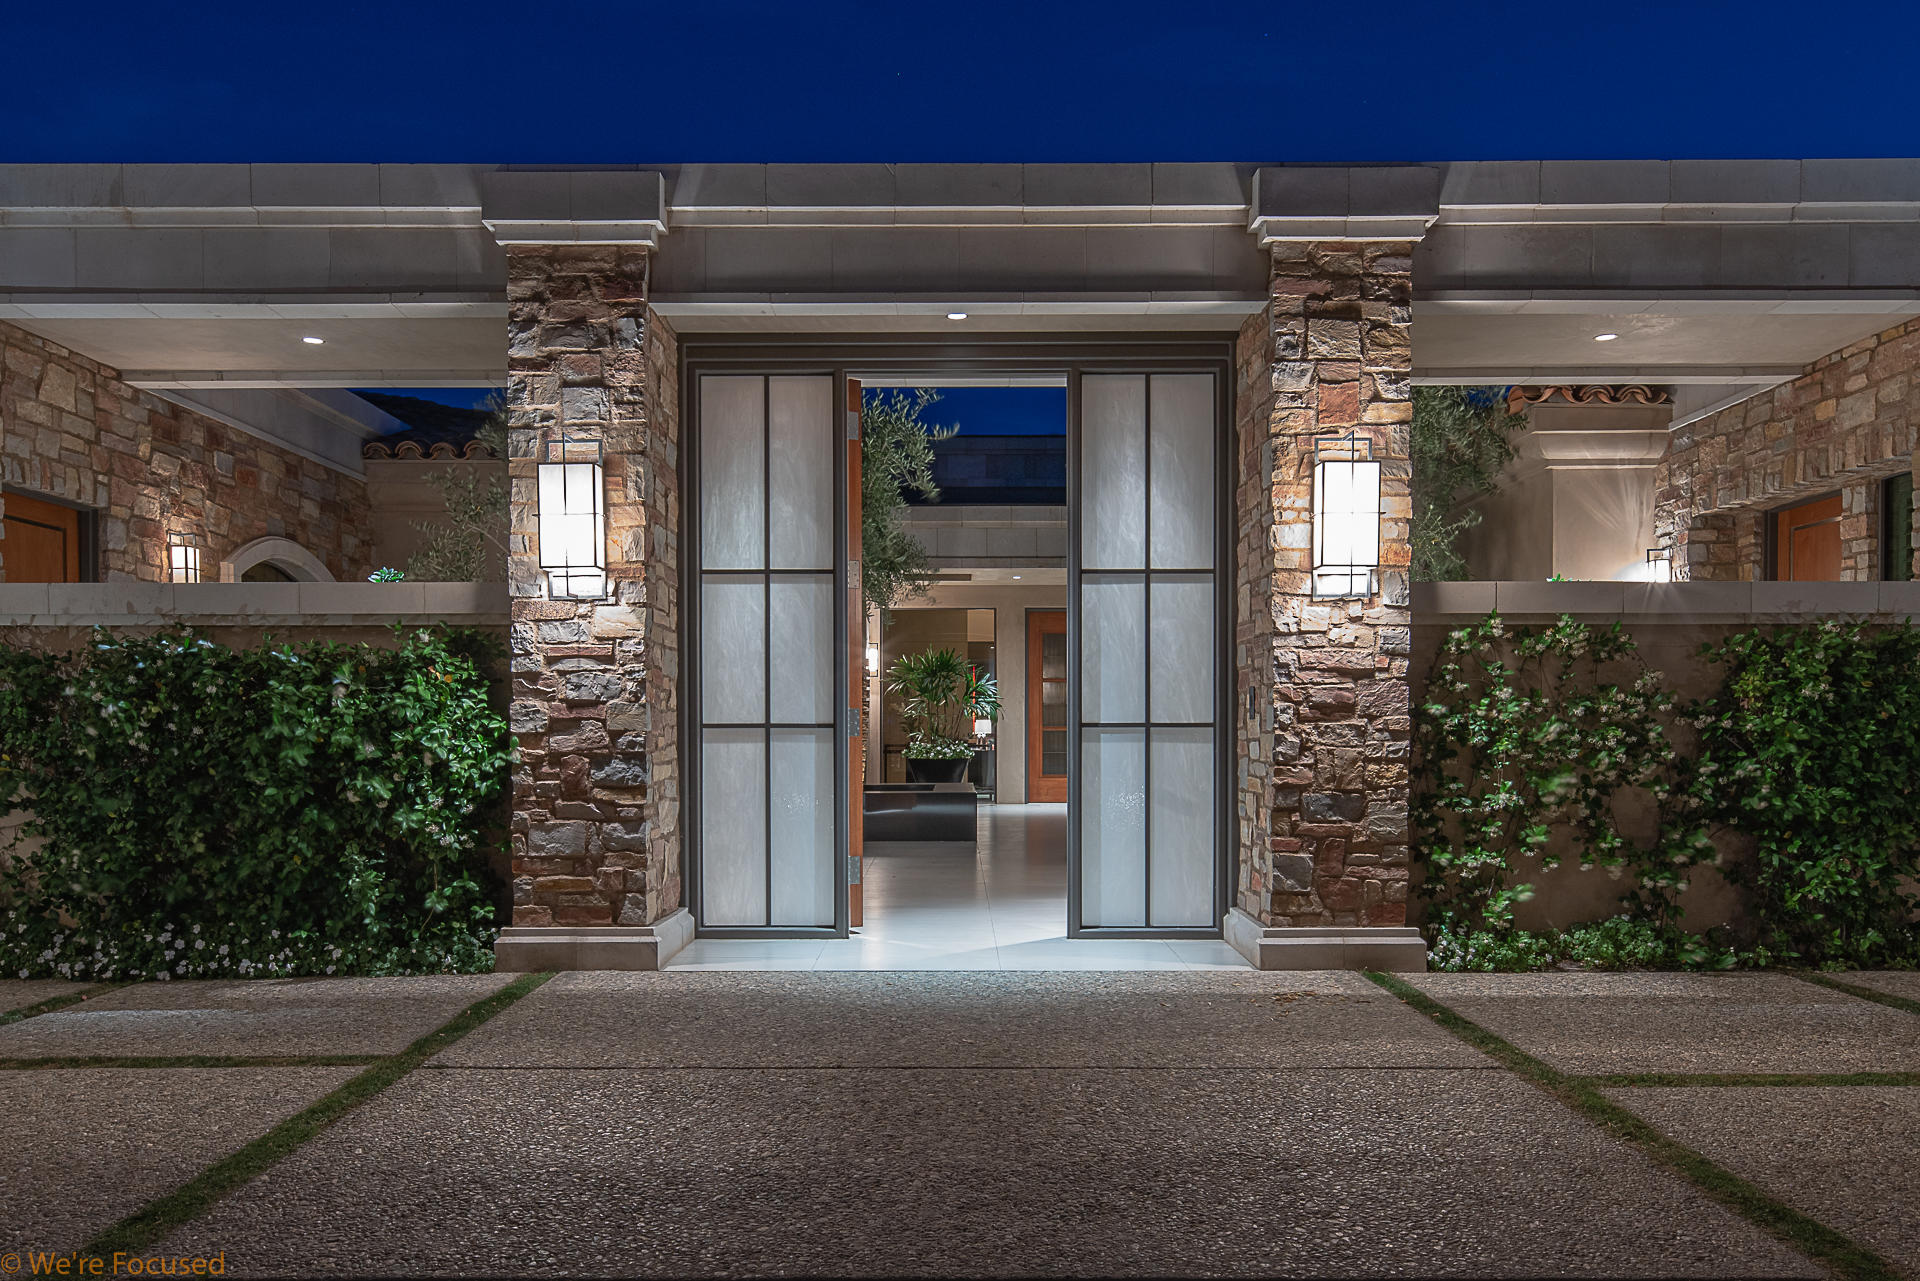 Magnificent residence in the Luxury Community of Toscana Country Club.   Iron and onyx front gates open to a tranquil and inviting courtyard showcasing lush landscaping and a work of art water feature.  This home was built on an elevated homesite capturing unobstructed southern views of the Santa Rosa Mountains.  In addition, views encompass a large lake as well as the 11th, 12th,13th fairways and greens of the Jack Nicklaus Signature South Course.   A custom contemporary home with approximately 6420 SF, 4 Bedrooms, 4.5 Baths designed by architect, Thomas Jakway.     Home was constructed with unsurpassed quality, architectural features and interior finishes by luxury home builders, Langlois Construction. An oasis in the Indian Wells - Custom pool. spa, waterfall, firepit, patio heaters and BBQ.    Patio offers shaded and open patio areas for sunning, lounging and outdoor dining.  Easy flow between the indoor and outdoor spaces create a lifestyle of relaxing privacy, intimate entertaining or grand celebrations.  Spectacular views both day and night. A must see!